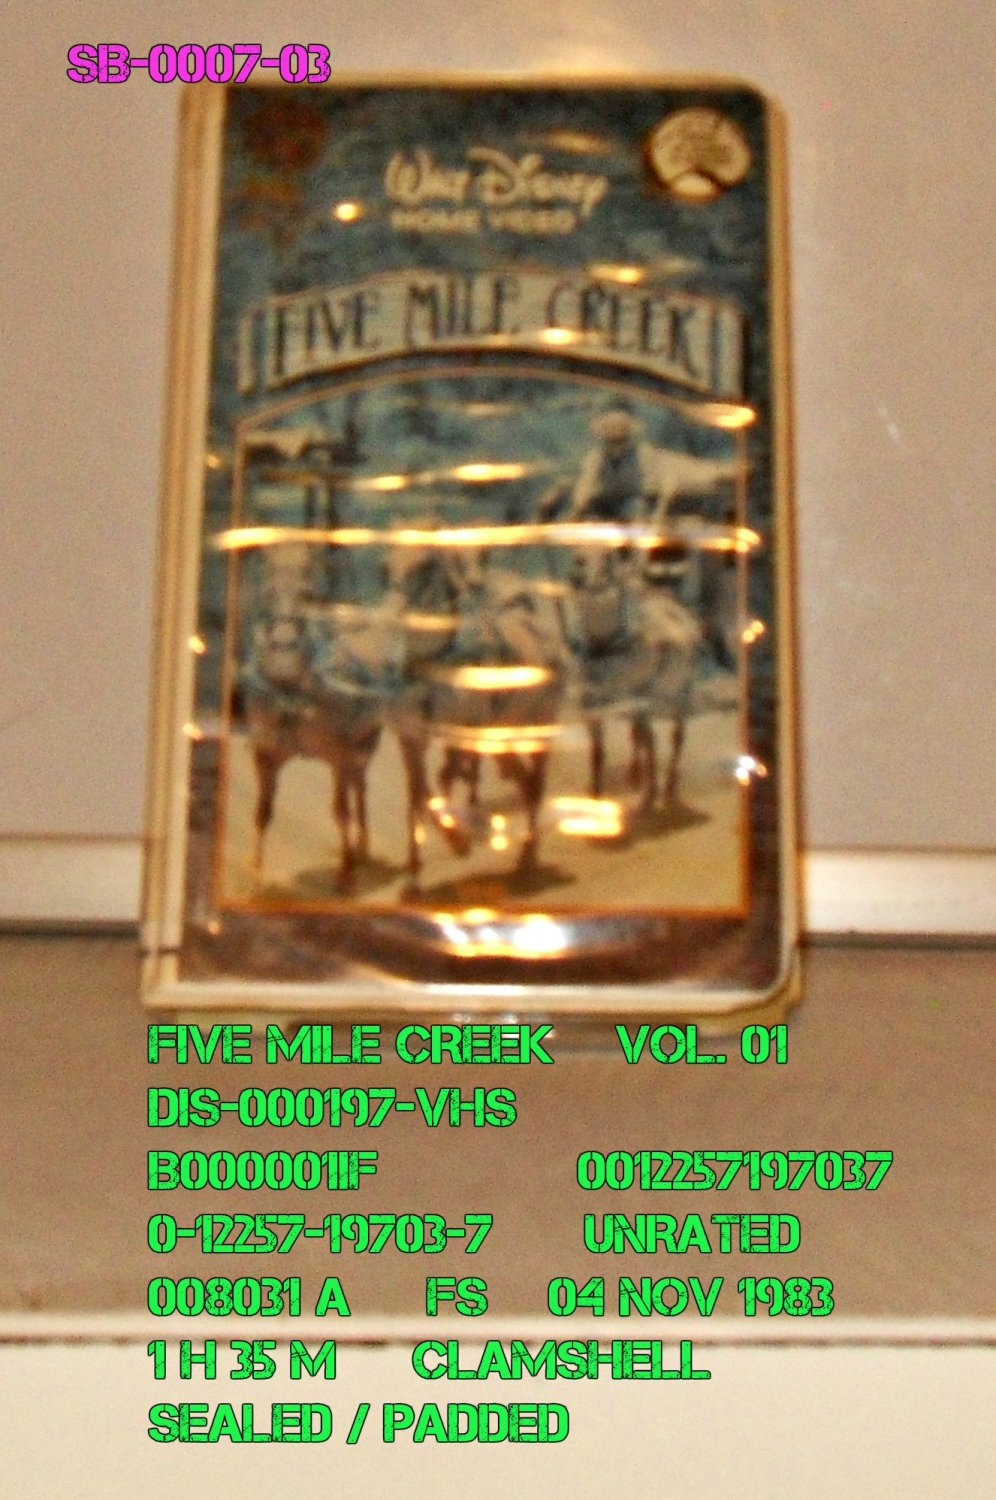 VHS - FIVE MILE CREEK  VOL. 01